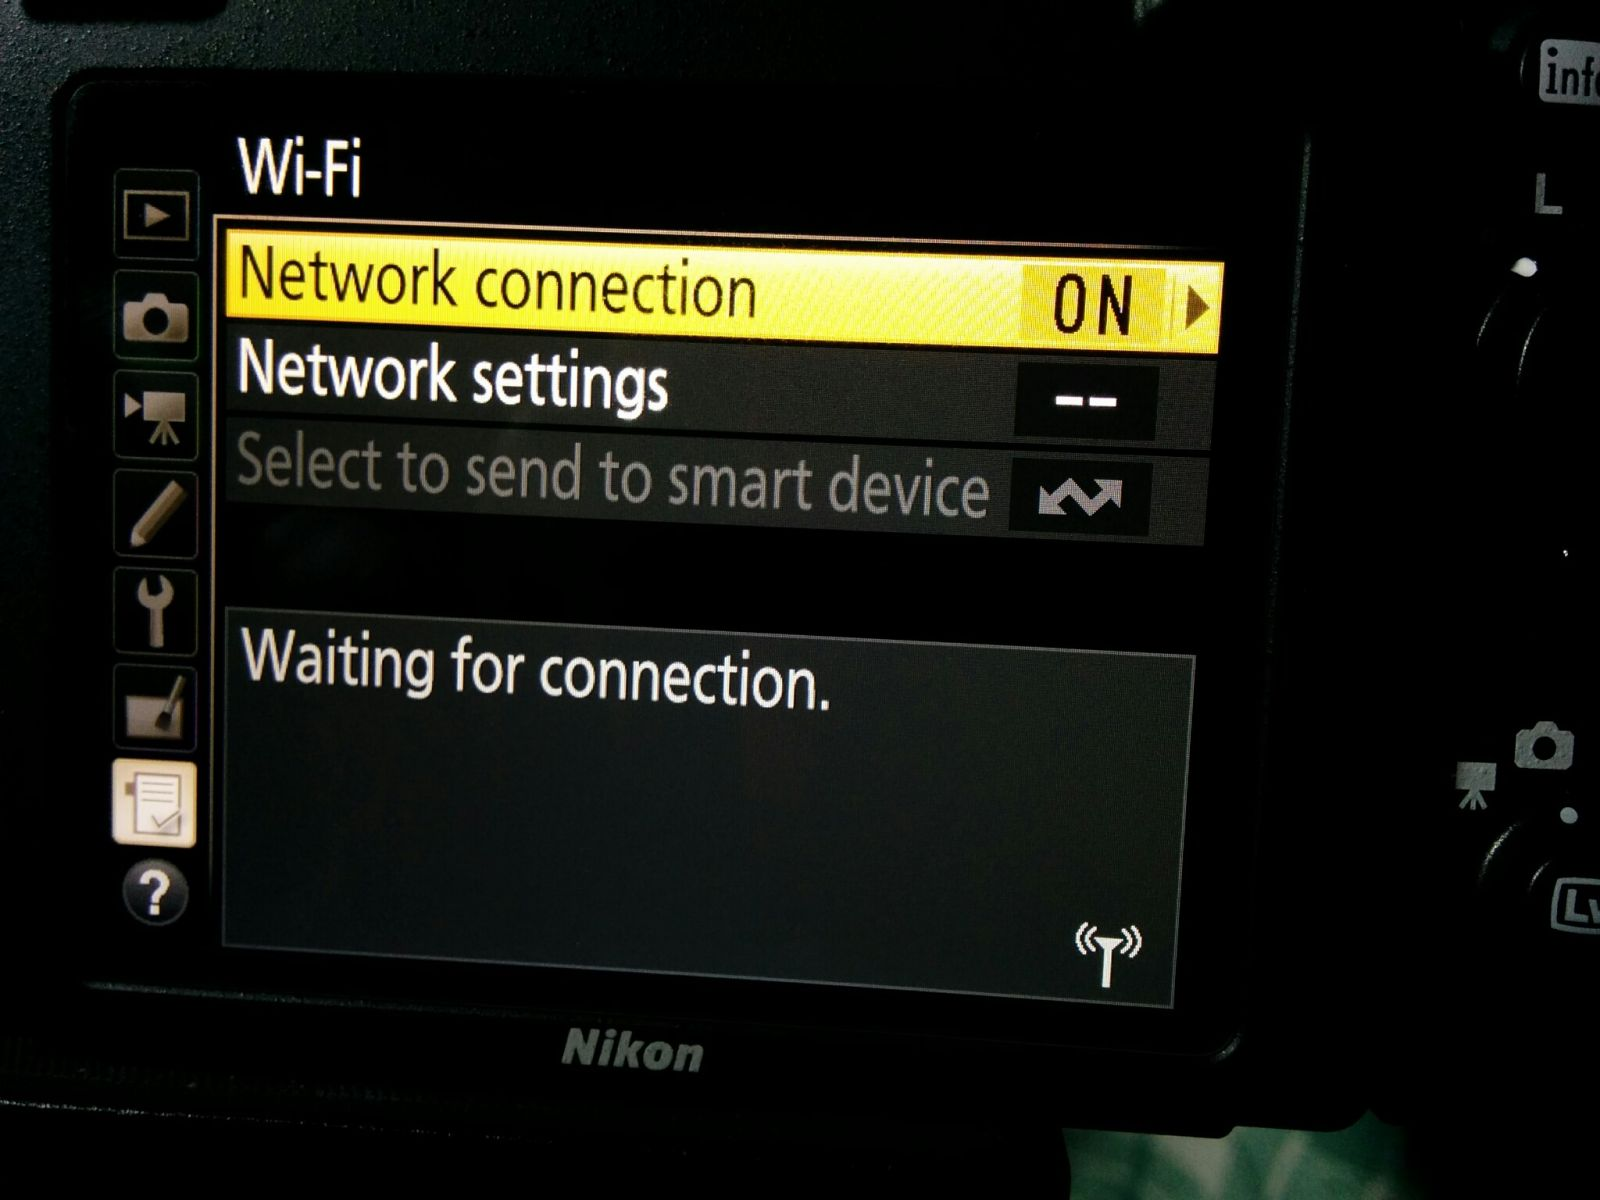 qdslrdashboard-nikon-remote-control-app-android-connected